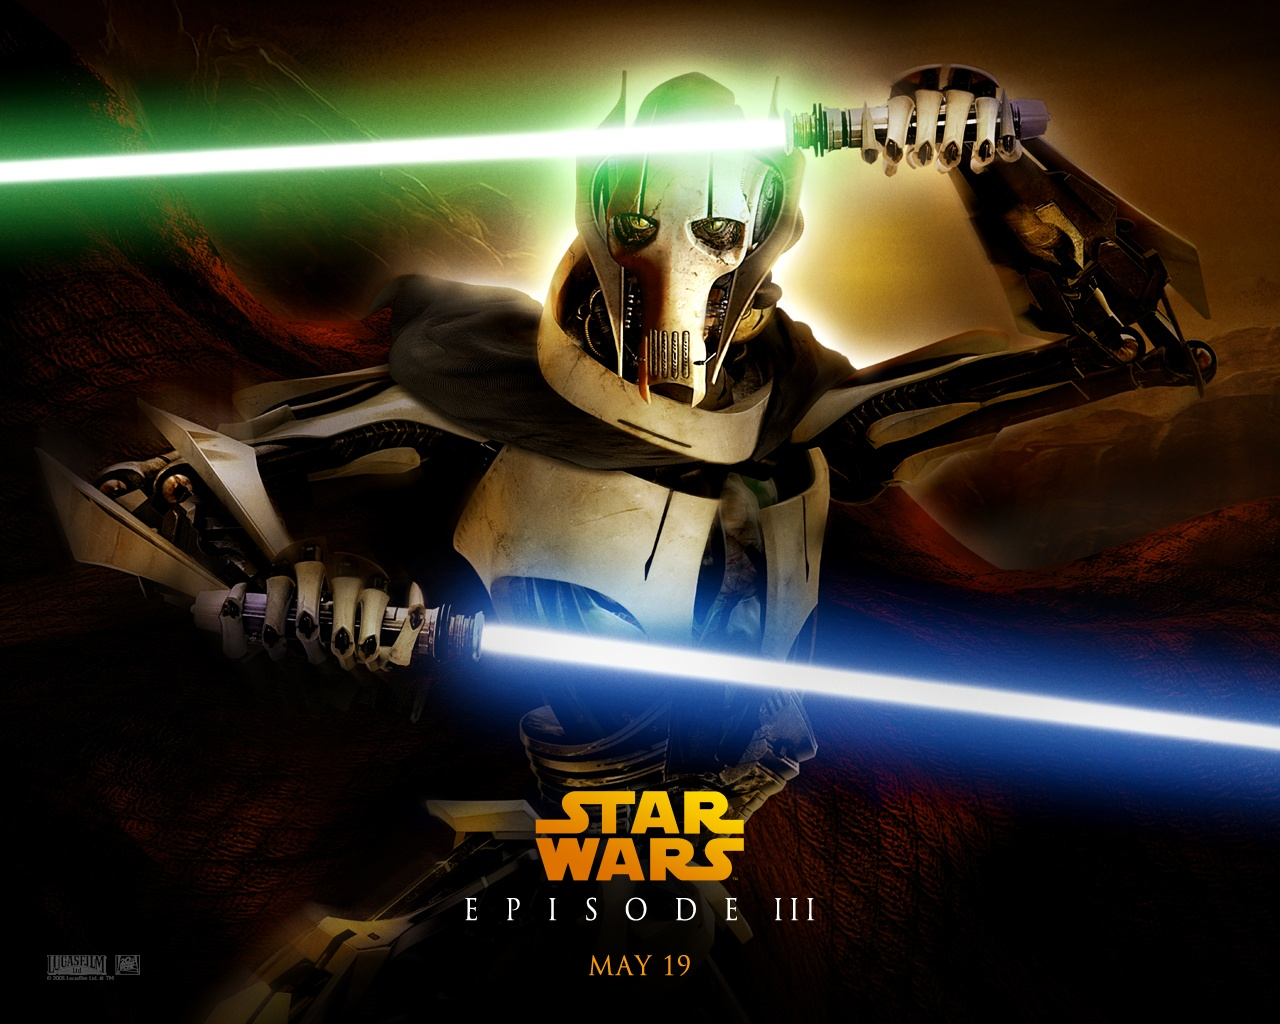 General Grievous - Star Wars: Revenge